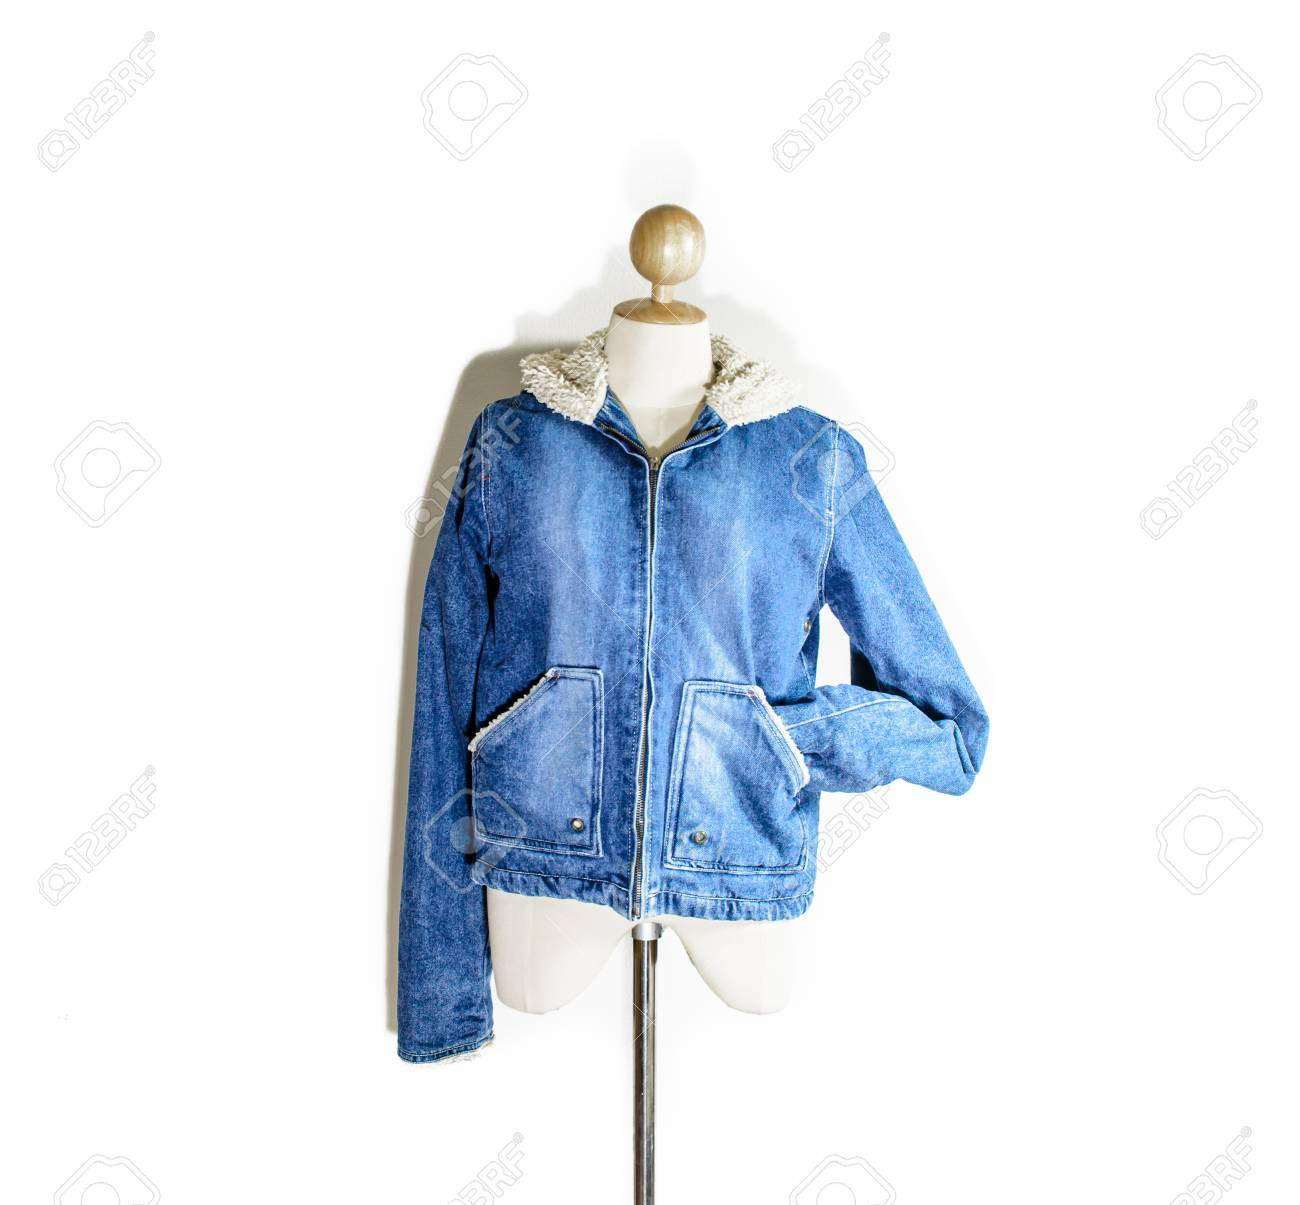 single old vintage blue jean coat at white dummy shirt with drop shadow isolated on white backgroound Stock Photo - 22851822